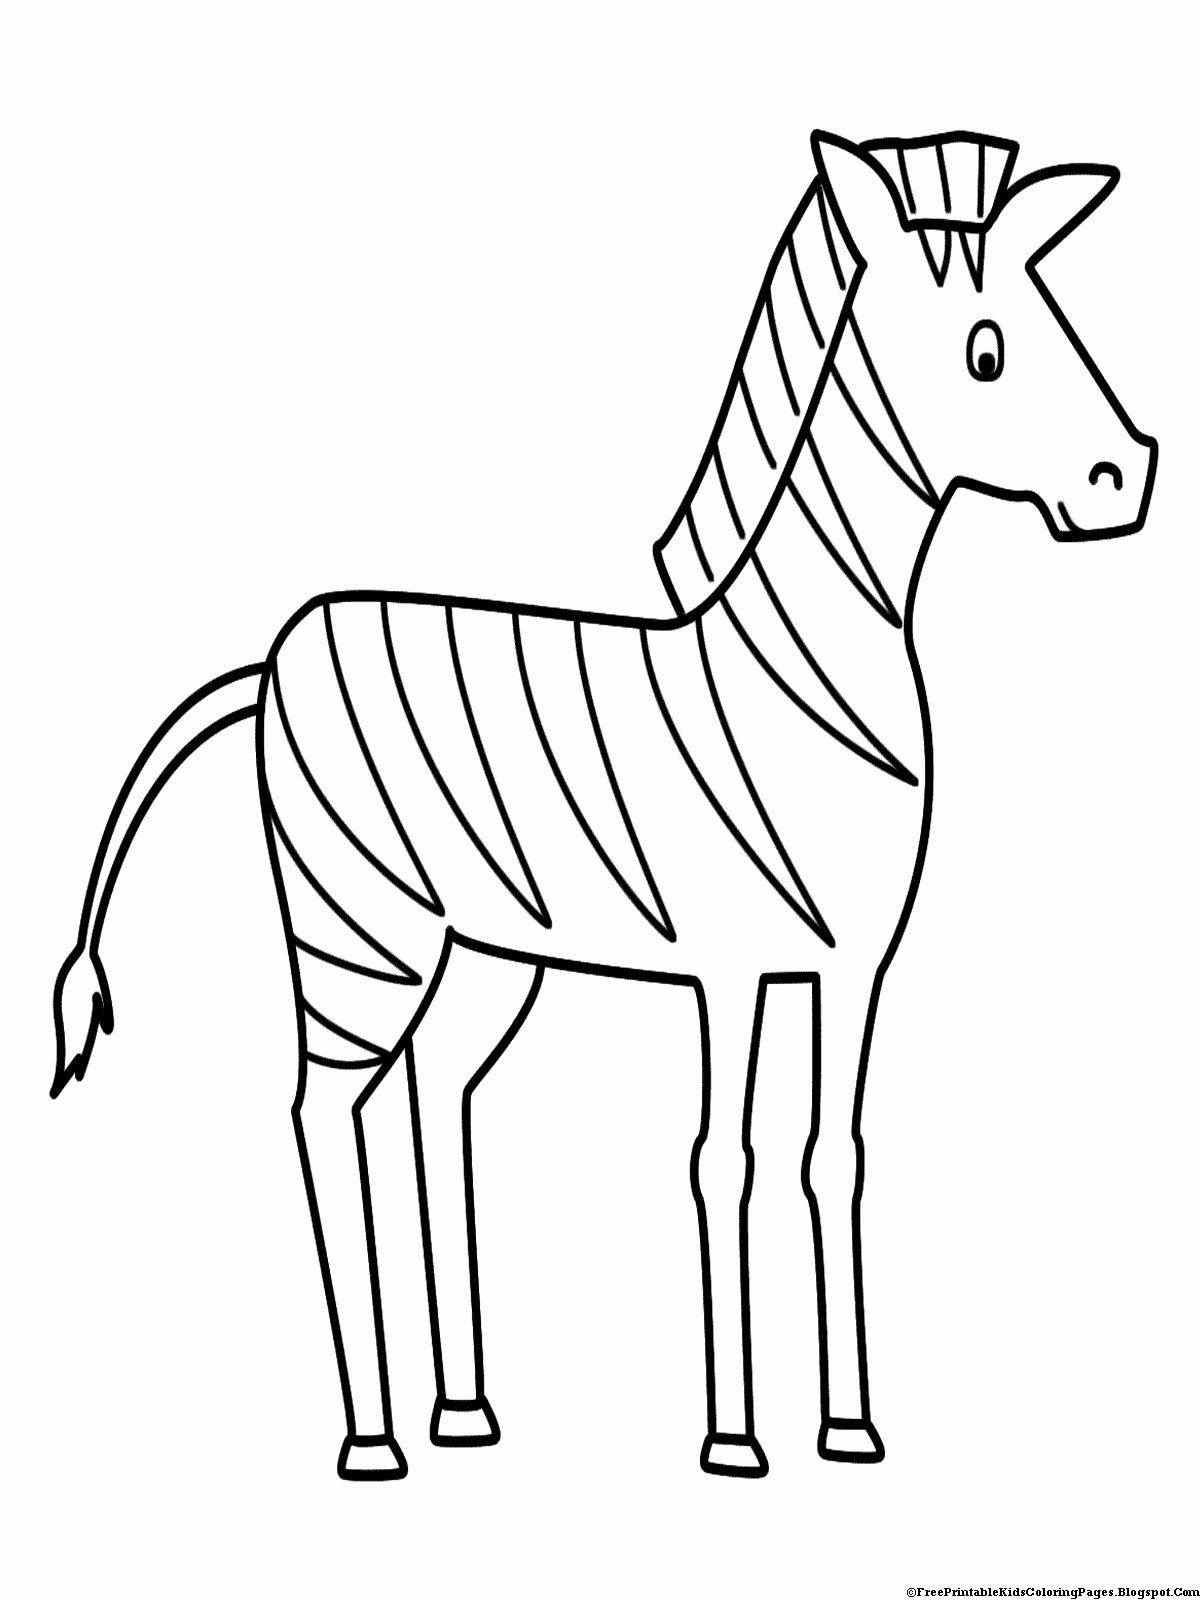 Coloring Book Pages Animals Fresh Zebra Coloring Pages Free Printable Kids Coloring Pages In 2020 Zebra Drawing Zebra Coloring Pages Animal Coloring Books